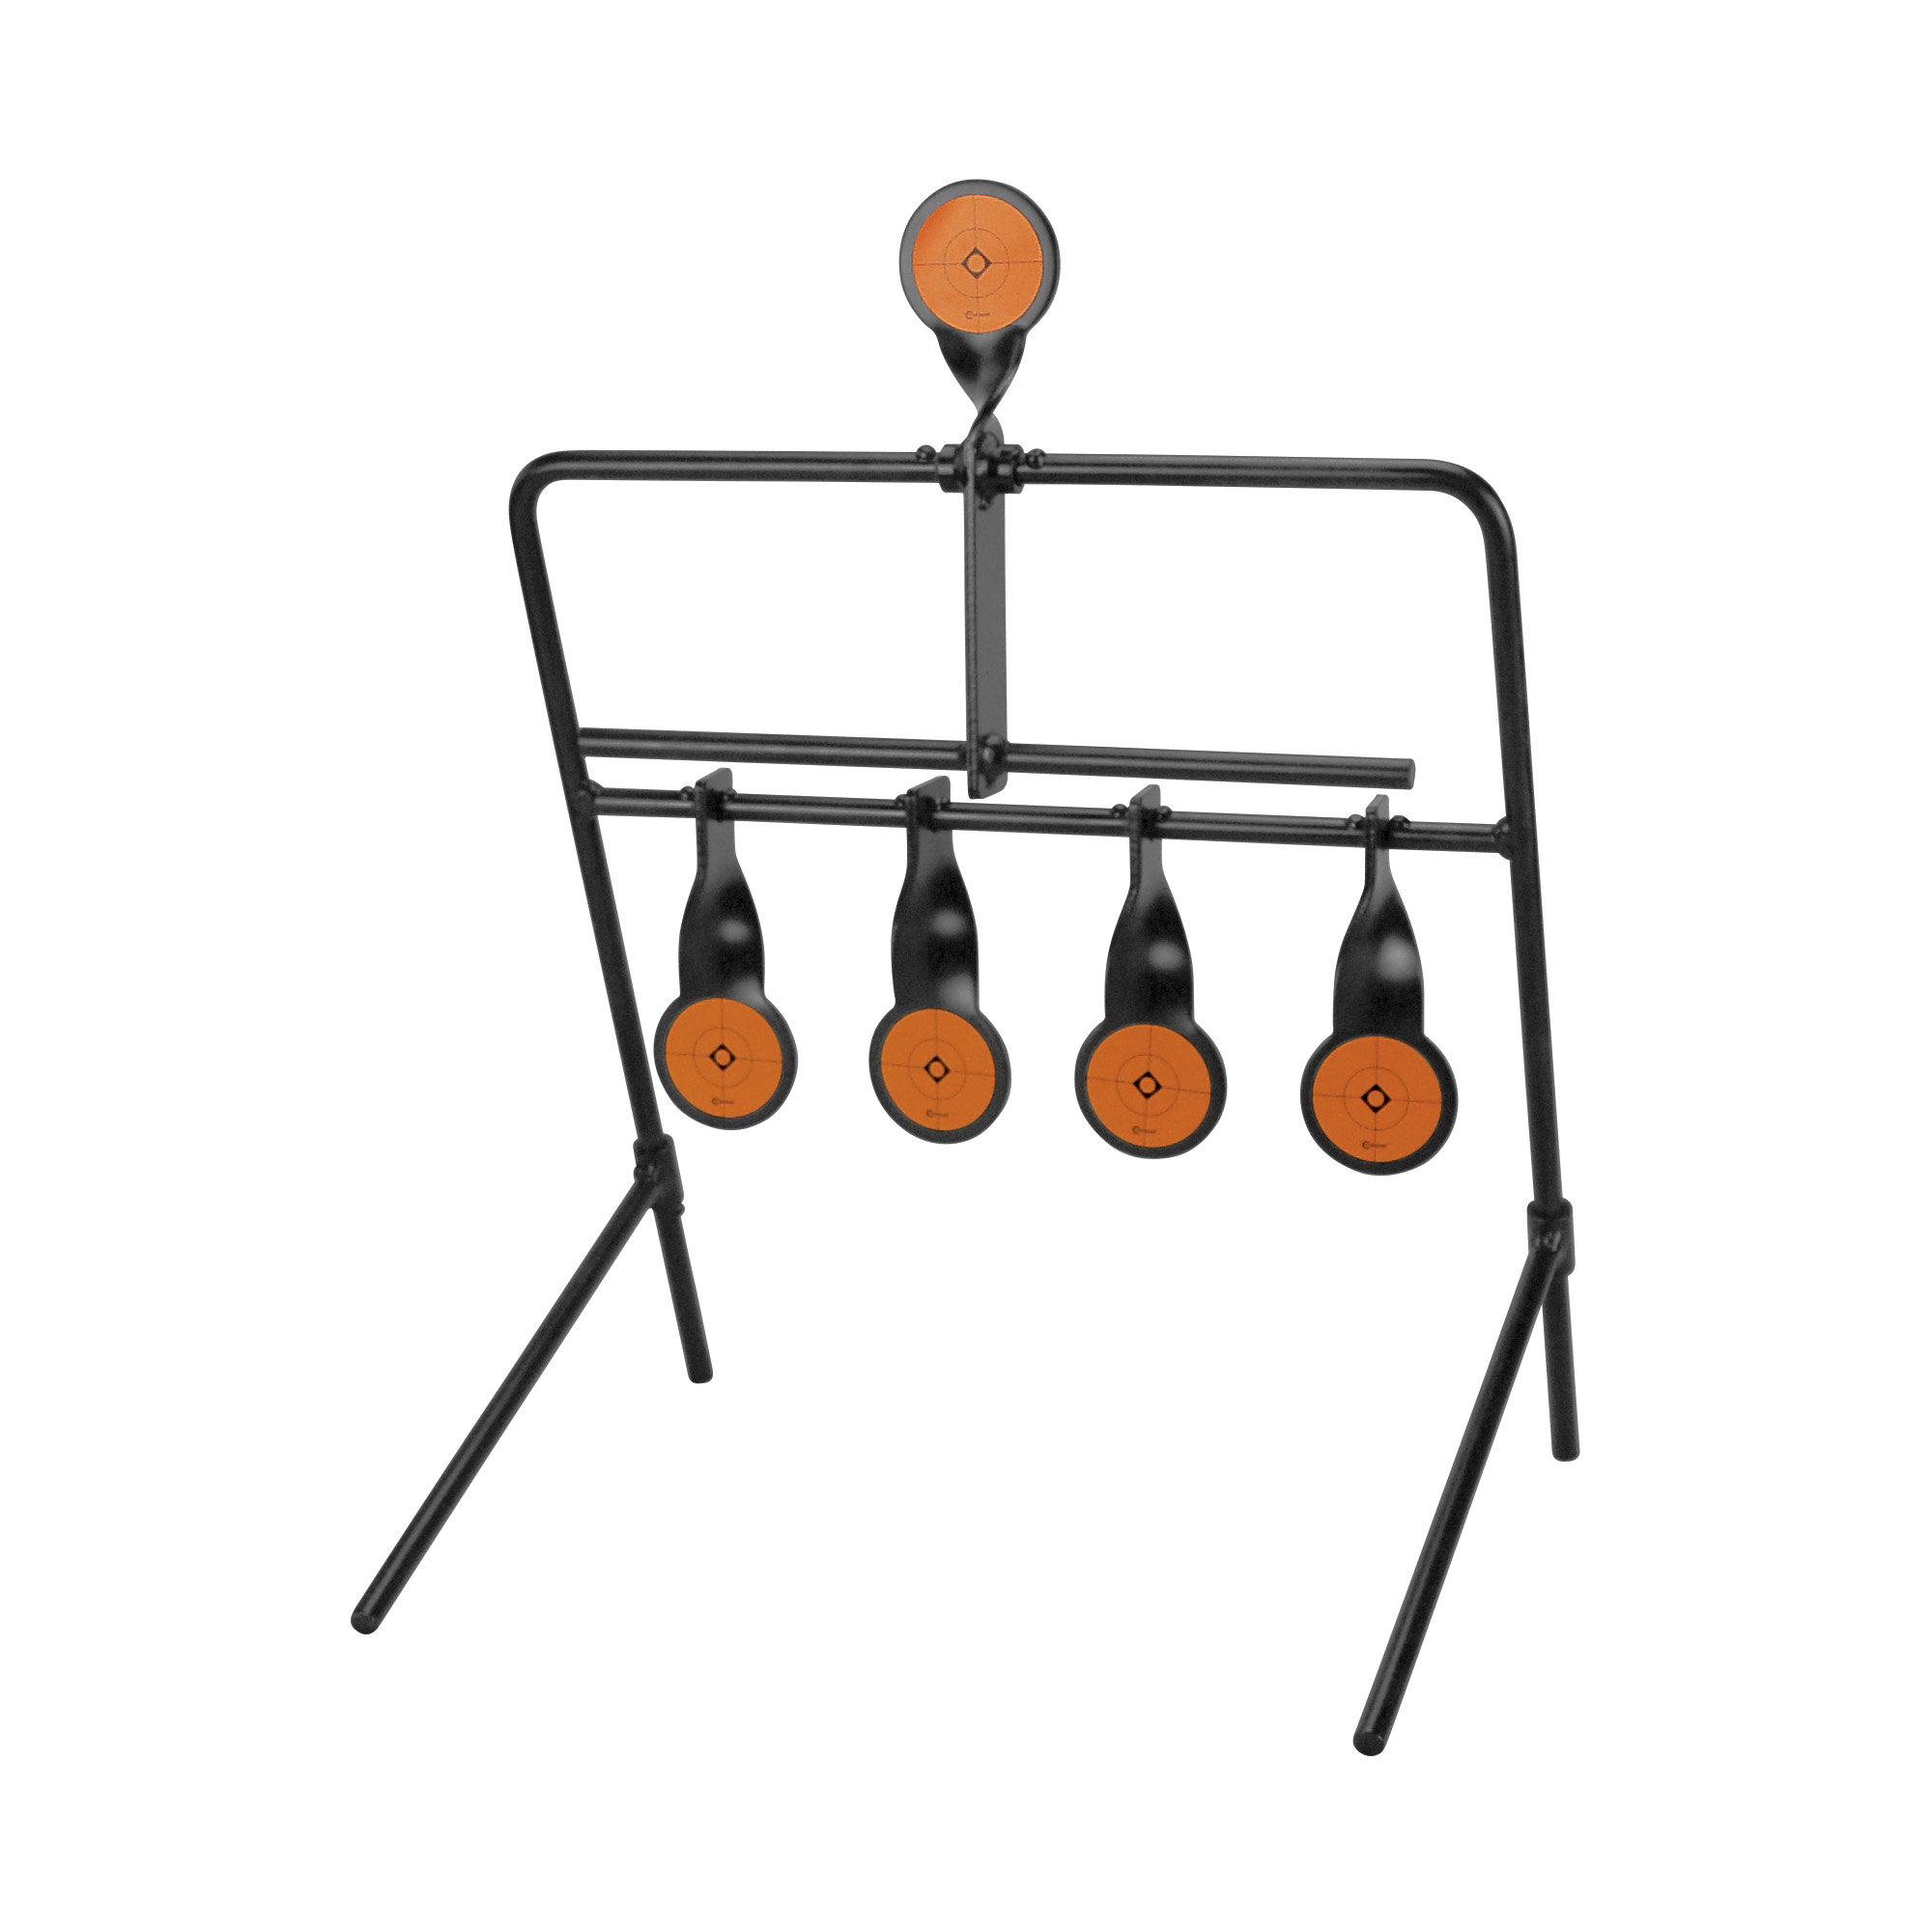 """Caldwell(R) Resetting Targets are easily portable and create an interactive shooting experience that makes plinking and target practice fun. Made of heavy duty steel"""" these targets are built to last. The bottom row of targets swing up and out of the way when hit. Shooting the top target will reset the bottom row."""